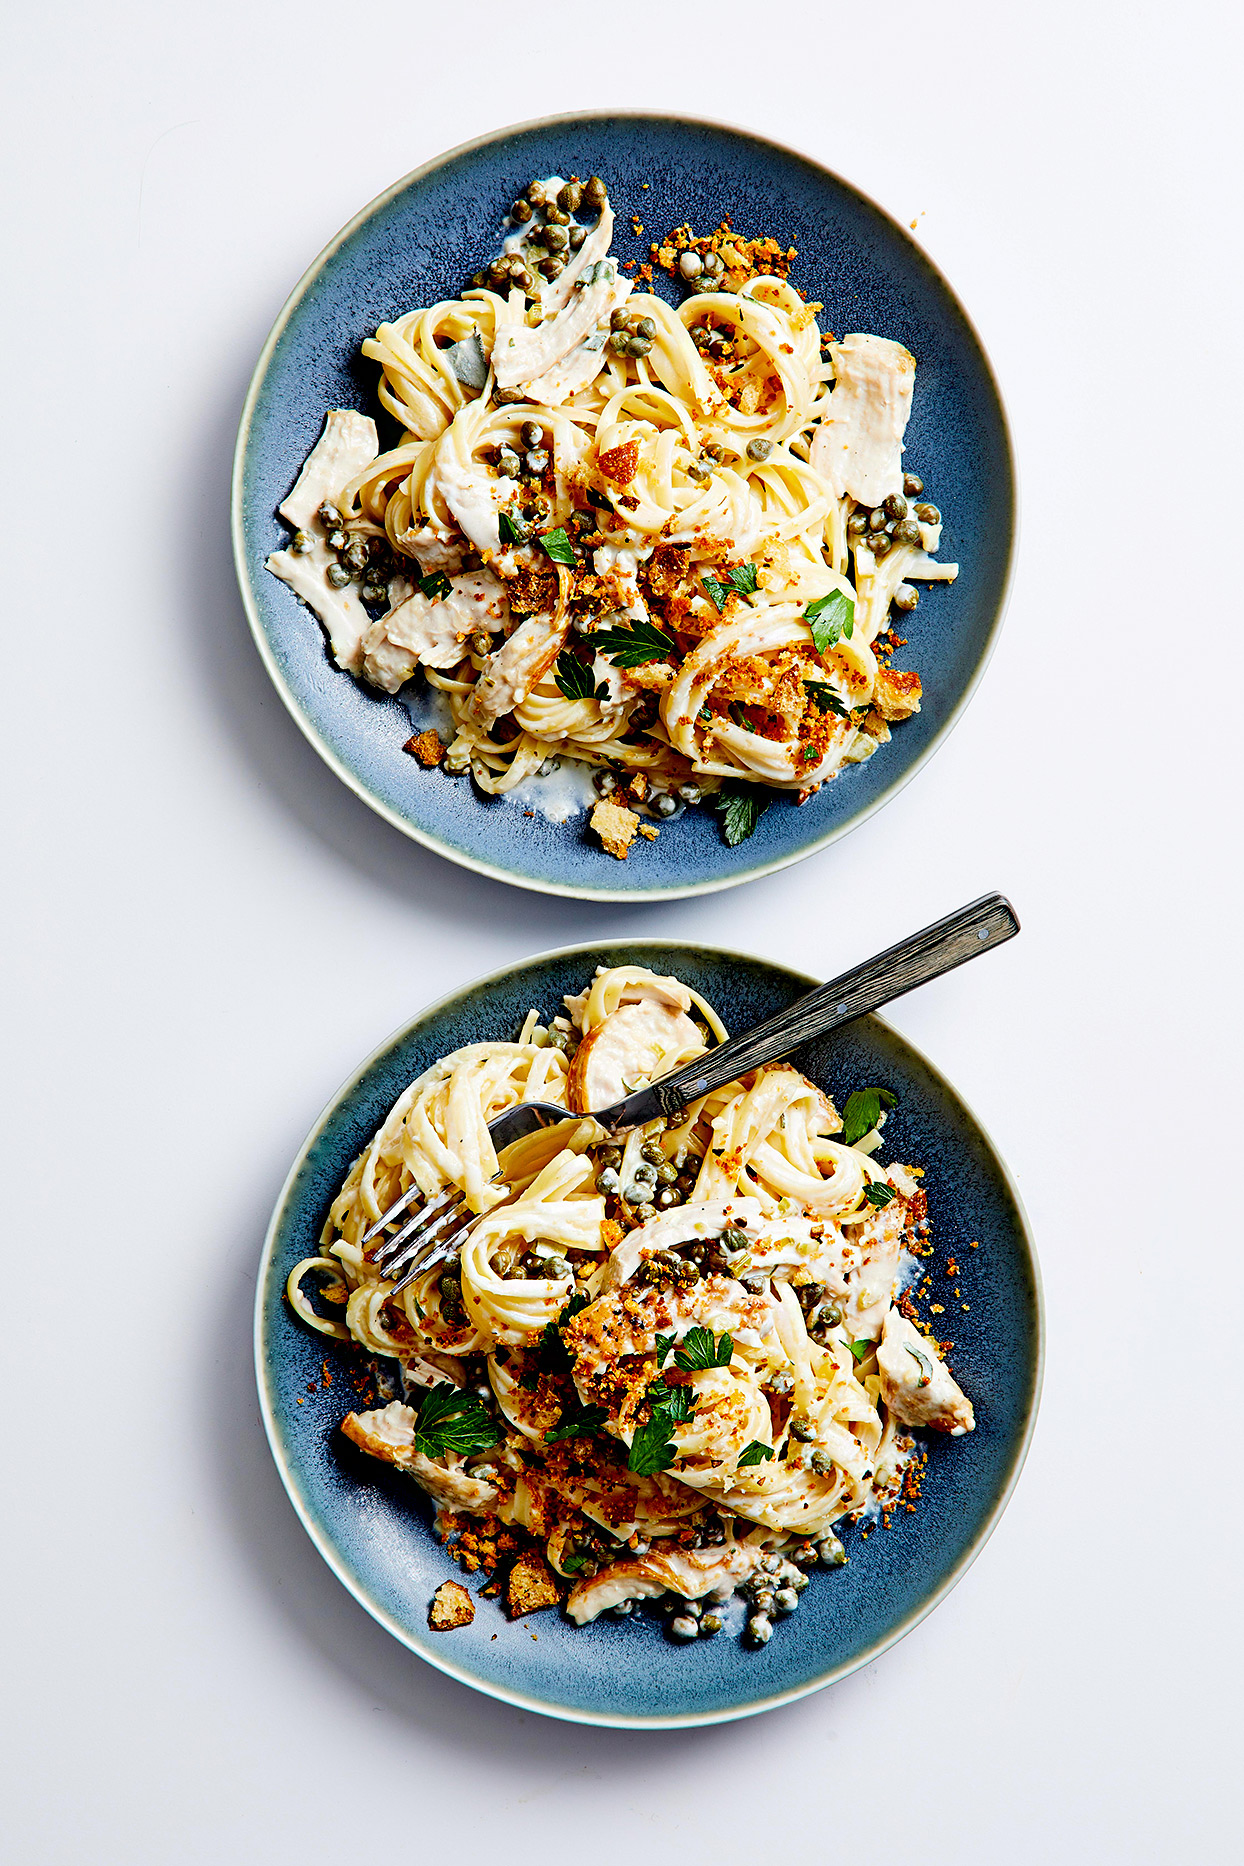 Creamy Pasta with Turkey and Crispy Crumbs